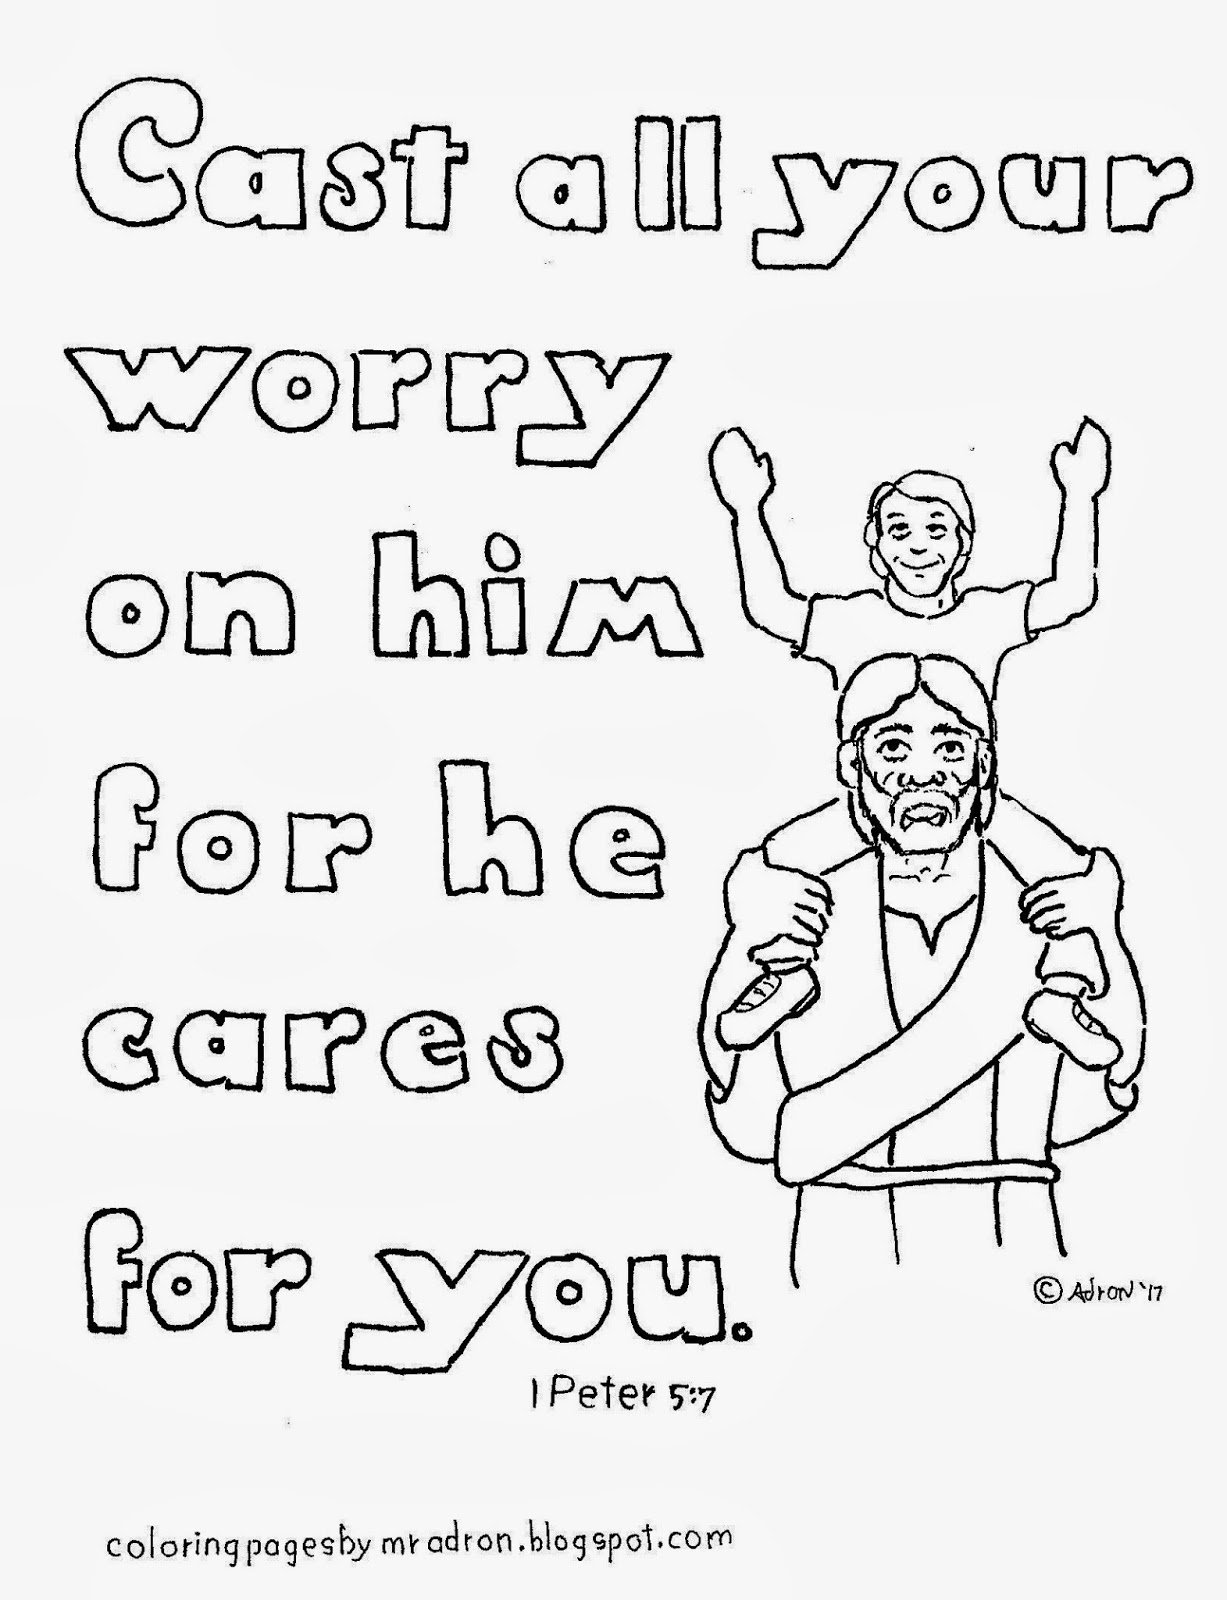 An illustration for 1 peter 5:7 to print and color.